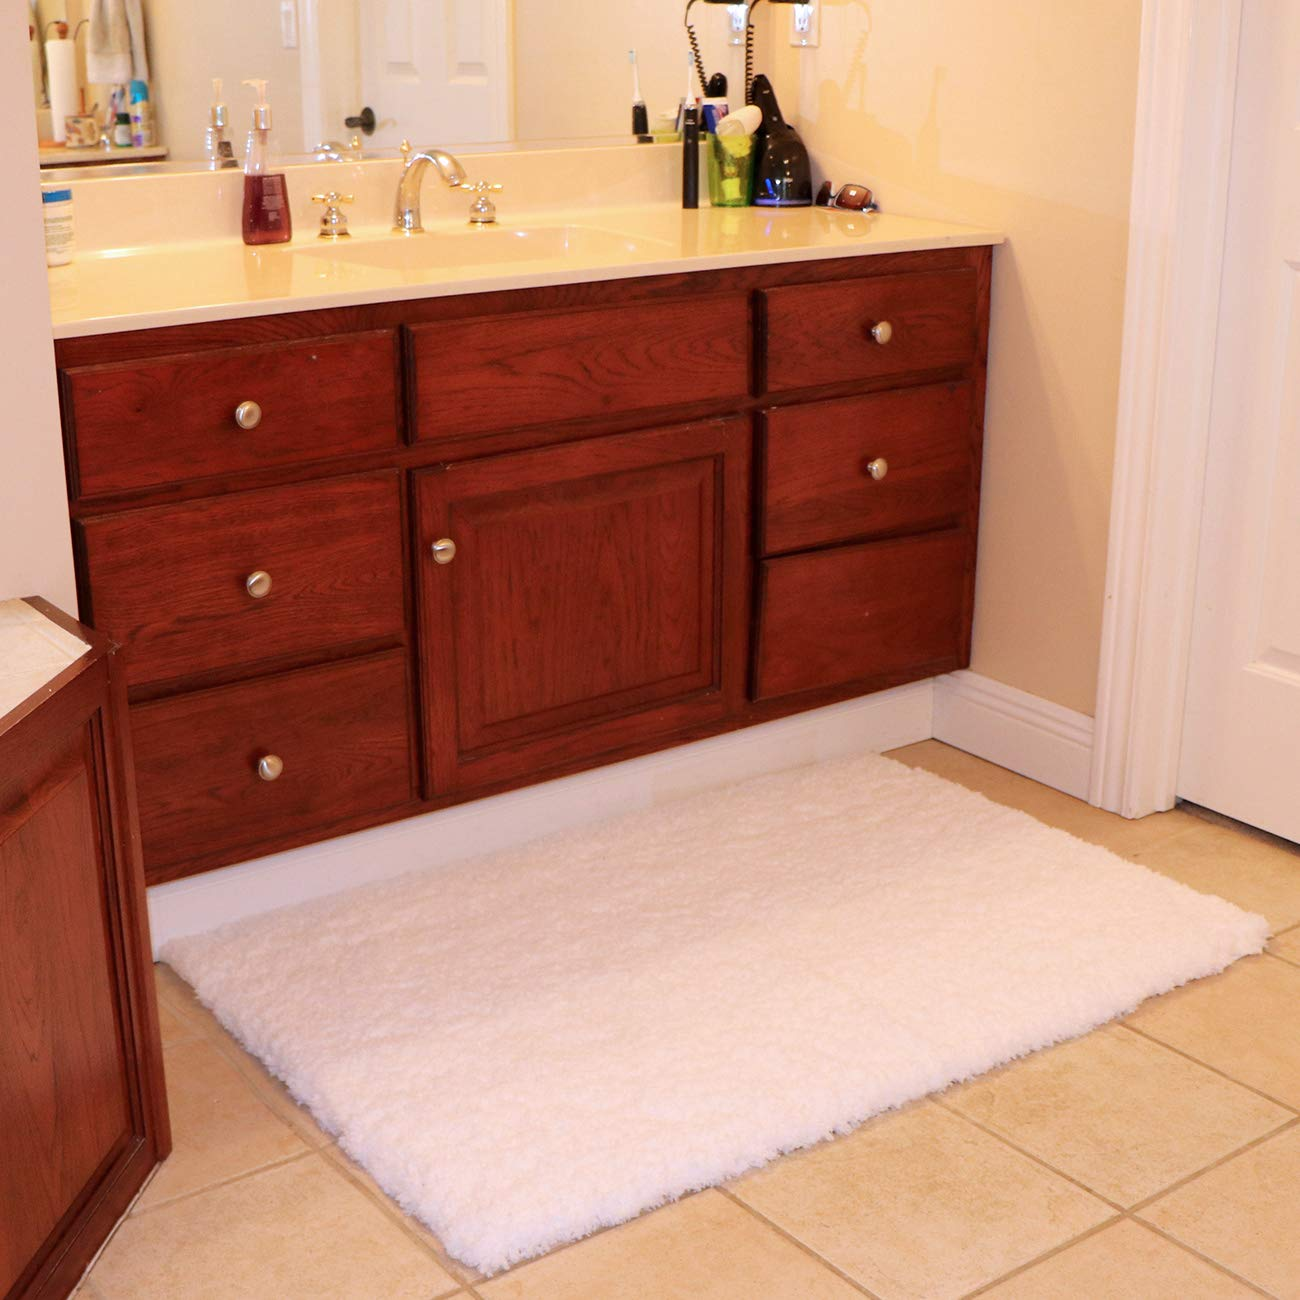 KMAT Bath Mat Bathroom Rugs 32'' x 47'',Large Soft Shaggy White Microfiber Shower Rug, Machine Washable Throw Rugs Non Slip Absorbent Luxury Plush Floor Mats Runner Carpet for Bath Tub Shower Bathroom by KMAT